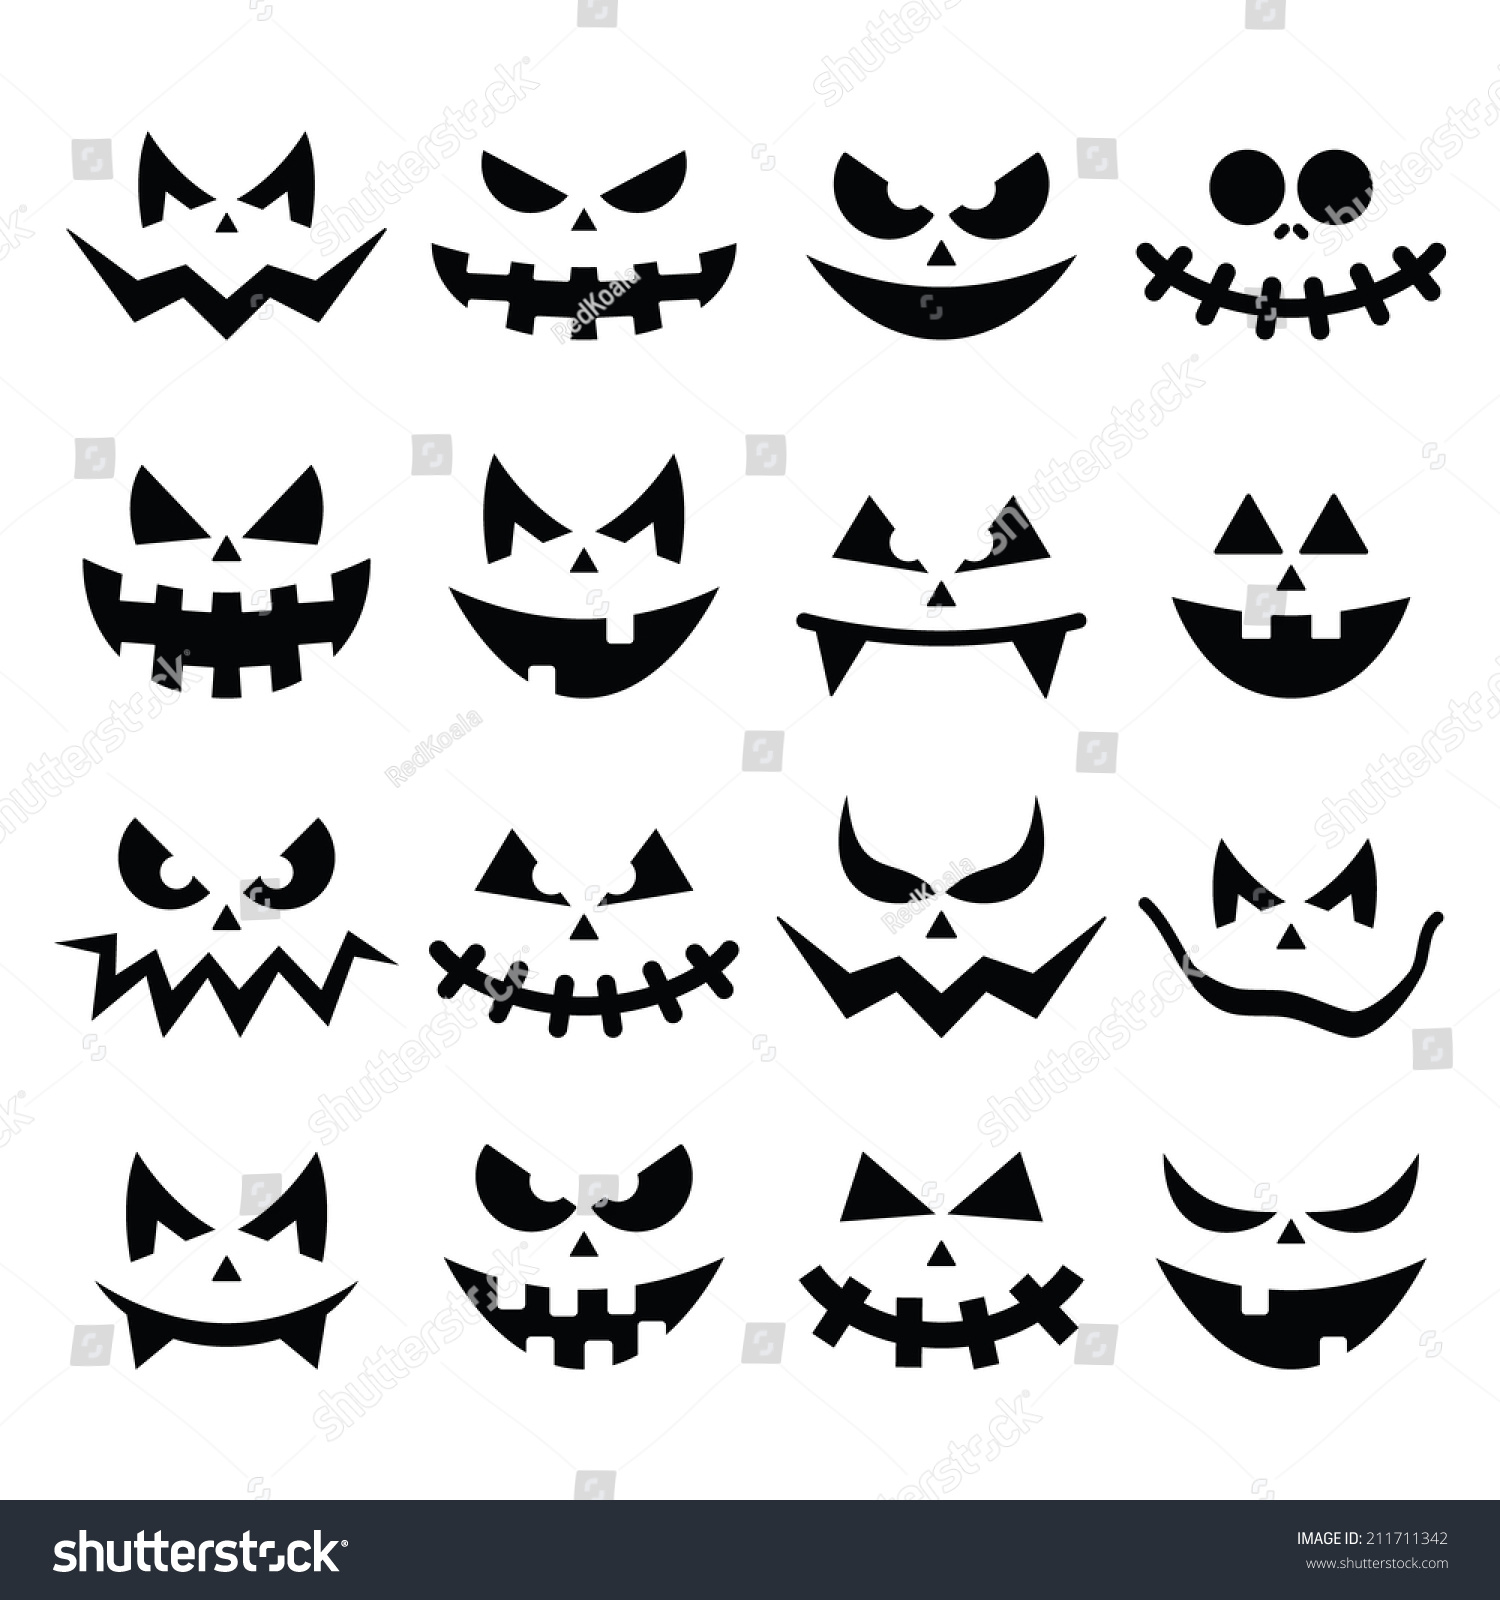 Scary halloween pumpkin faces icons set stock vector for Evil pumpkin face template